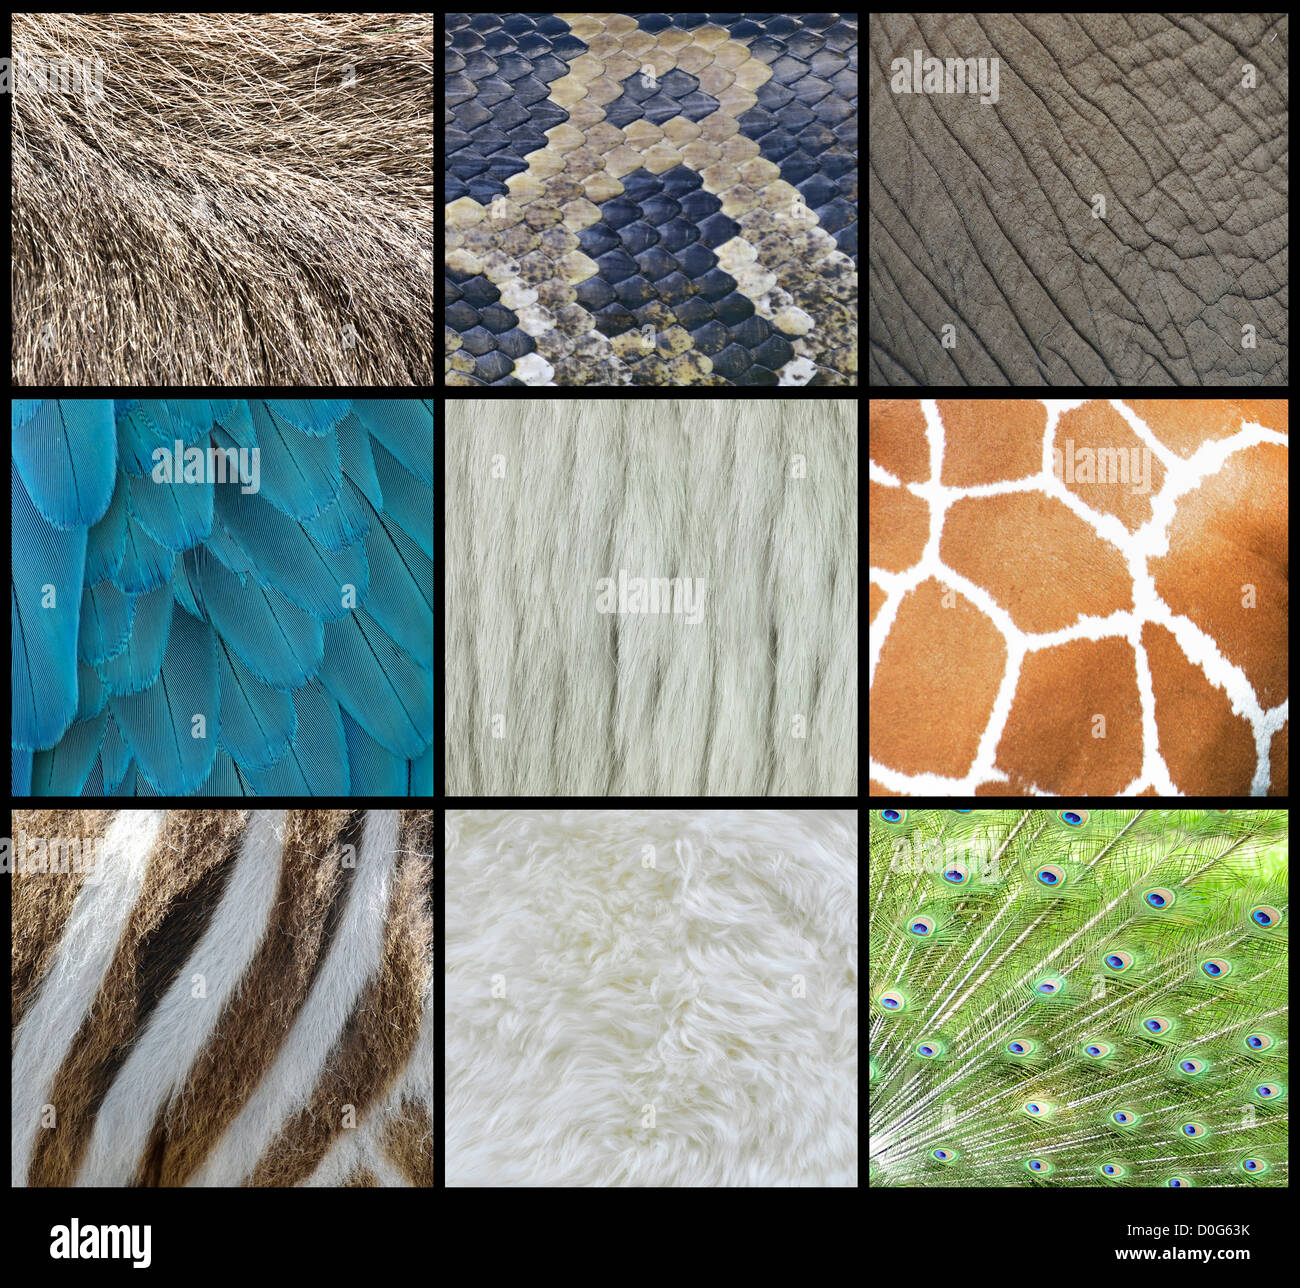 Animal Pattern Texture Of Skin, Fur And Feathers - Stock Image